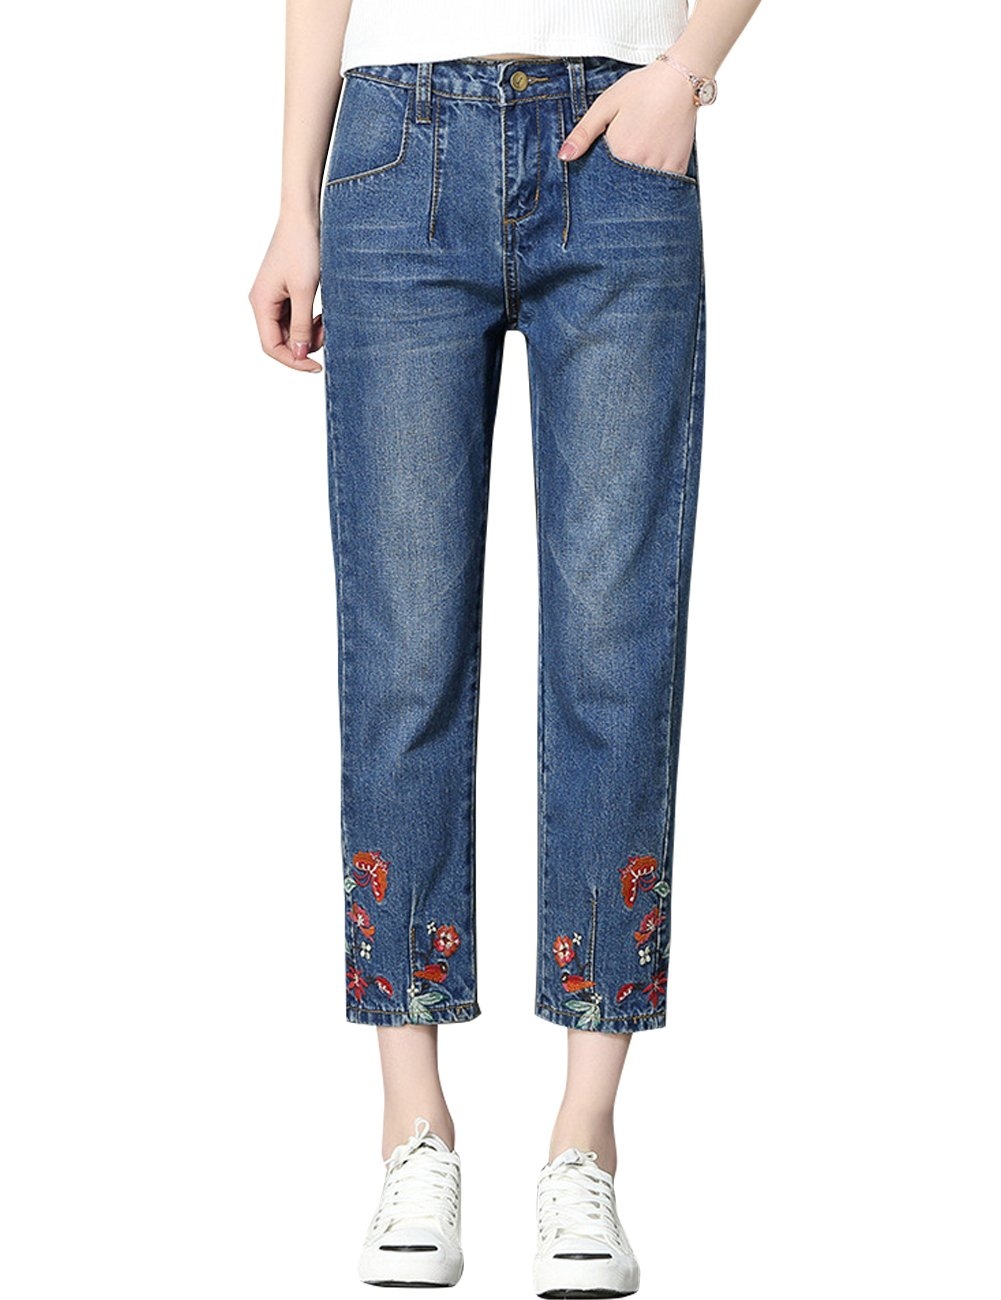 SUGIRLS Women's Straight Leg Floral Embroidery Loose Cropped Denim Pants Jeans 28